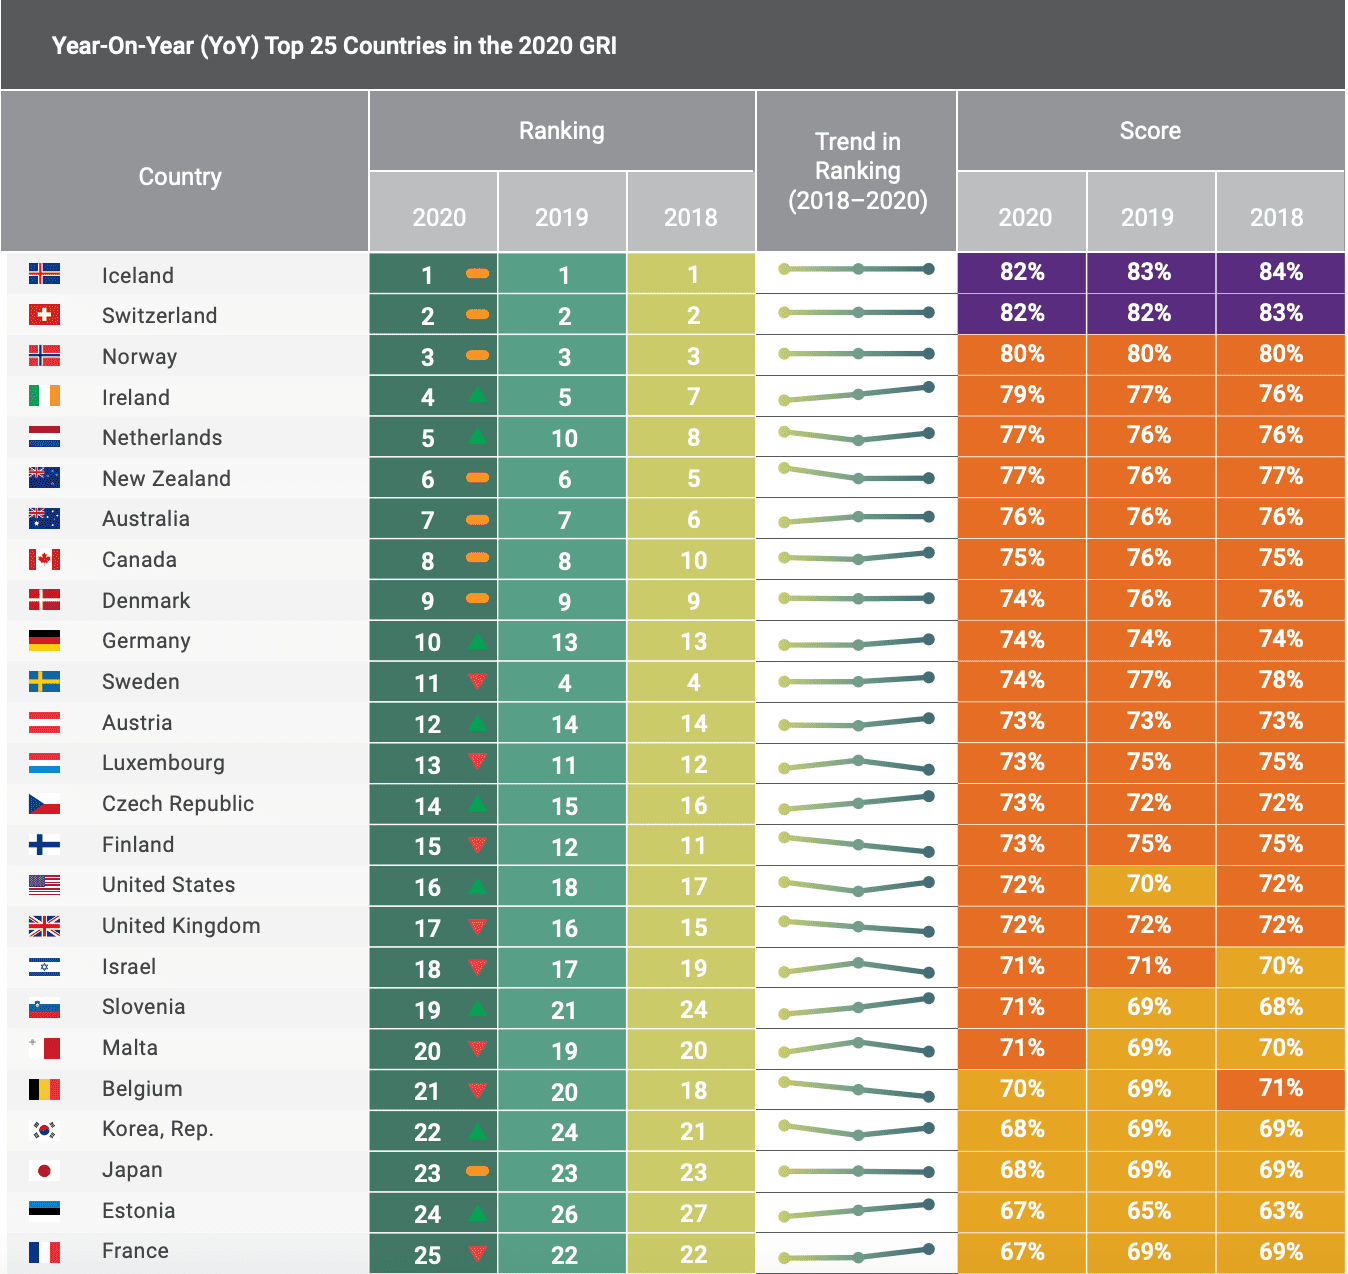 Year-On-Year (YoY) Top 25 Countries in the 2020 GRI